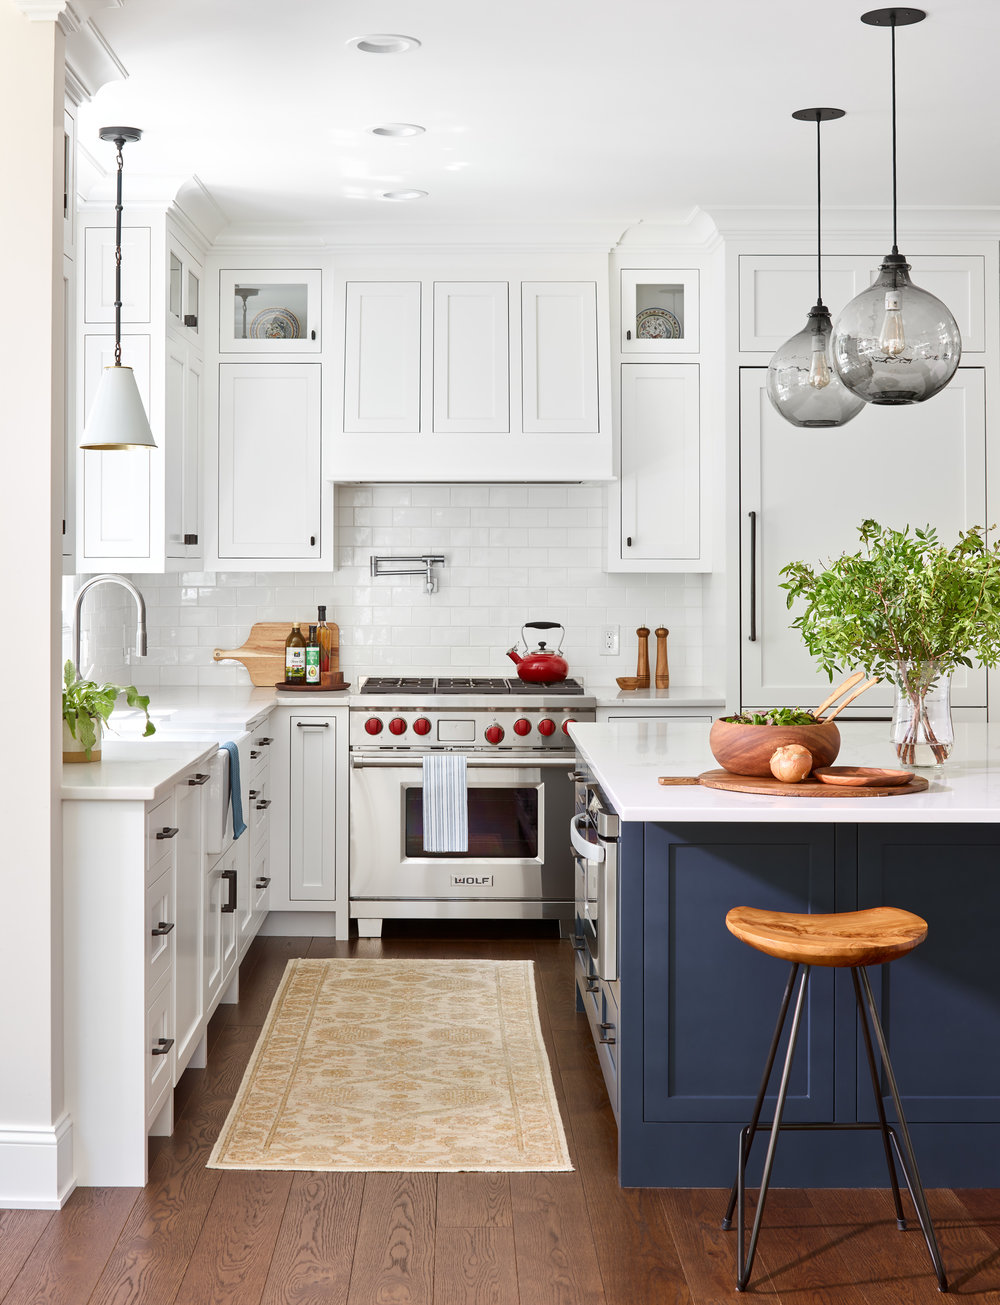 PinneyDesigns_UpweyWellesley_KitchenIsle_Final_SMALL copy.jpg